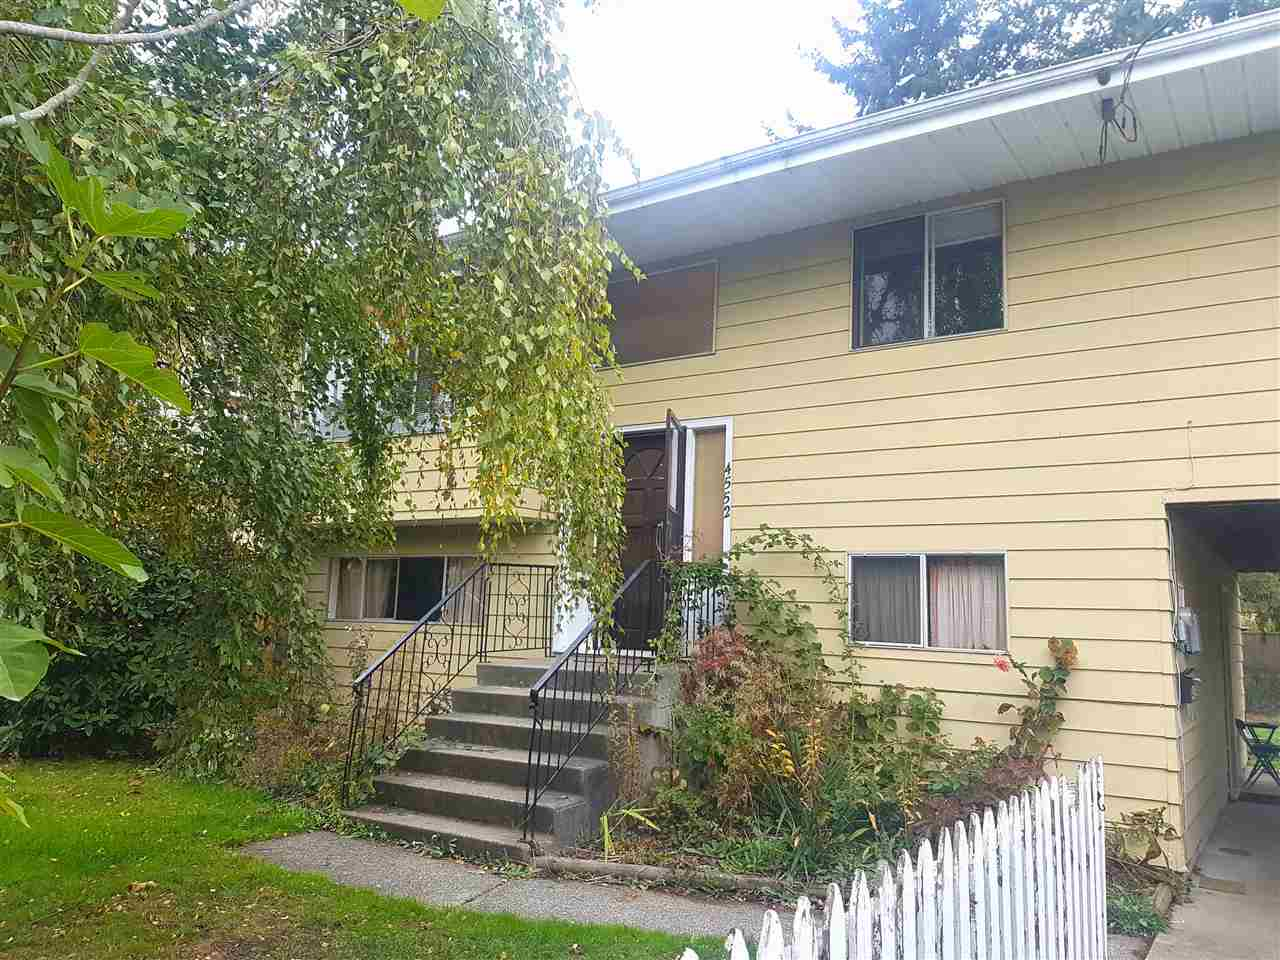 INVESTOR/BUILDER ALERT in WEST LADNER!!!! This prime location property is waiting for you. Hold now and build later on this approx. 6500 sqft rectangular lot with 60' frontage. This 2 level home features 3 bedrooms upstairs with potential to add a 1 bedroom suite downstairs if need be. Currently rented for $2000/month to great tenants. Great location, minutes away from Port Guichon Elementary, Delta Secondary, and 10 min drive to Southpointe Academy. Ladner Village, Ladner Leisure Centre are just around the corner. Easy access to HWY 99 to go to Richmond and Vancouver as well as HWY 17 toward the ferries. Don't miss out!!!